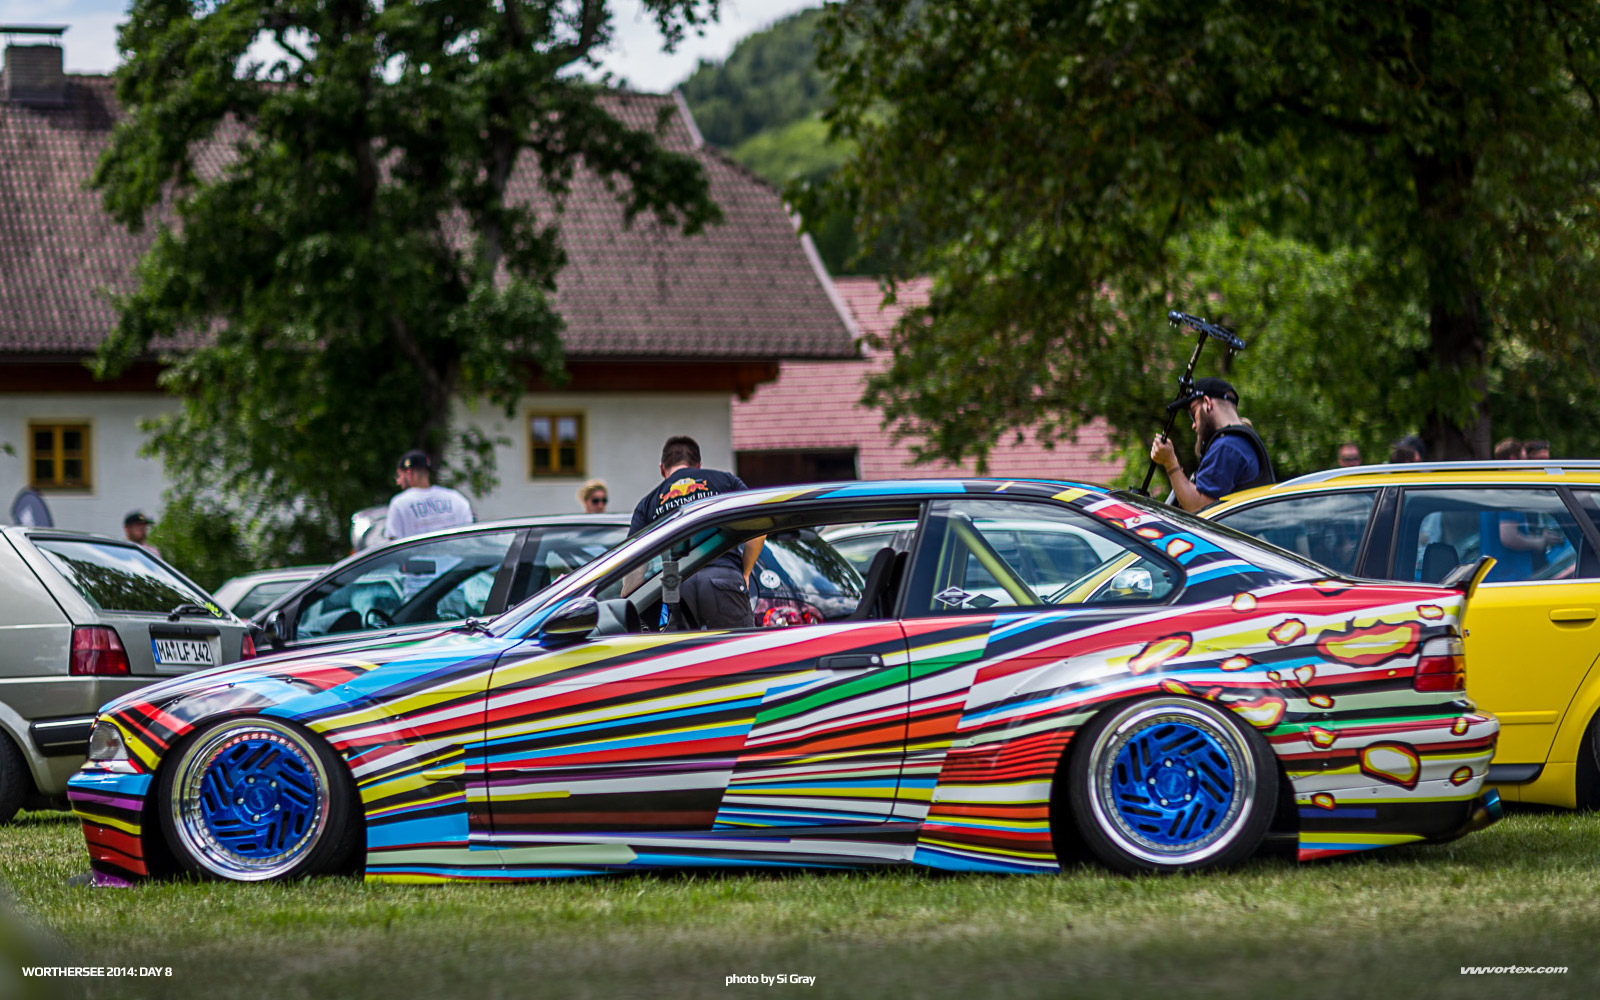 2014-Worthersee-Day-8-Si-Gray-1122